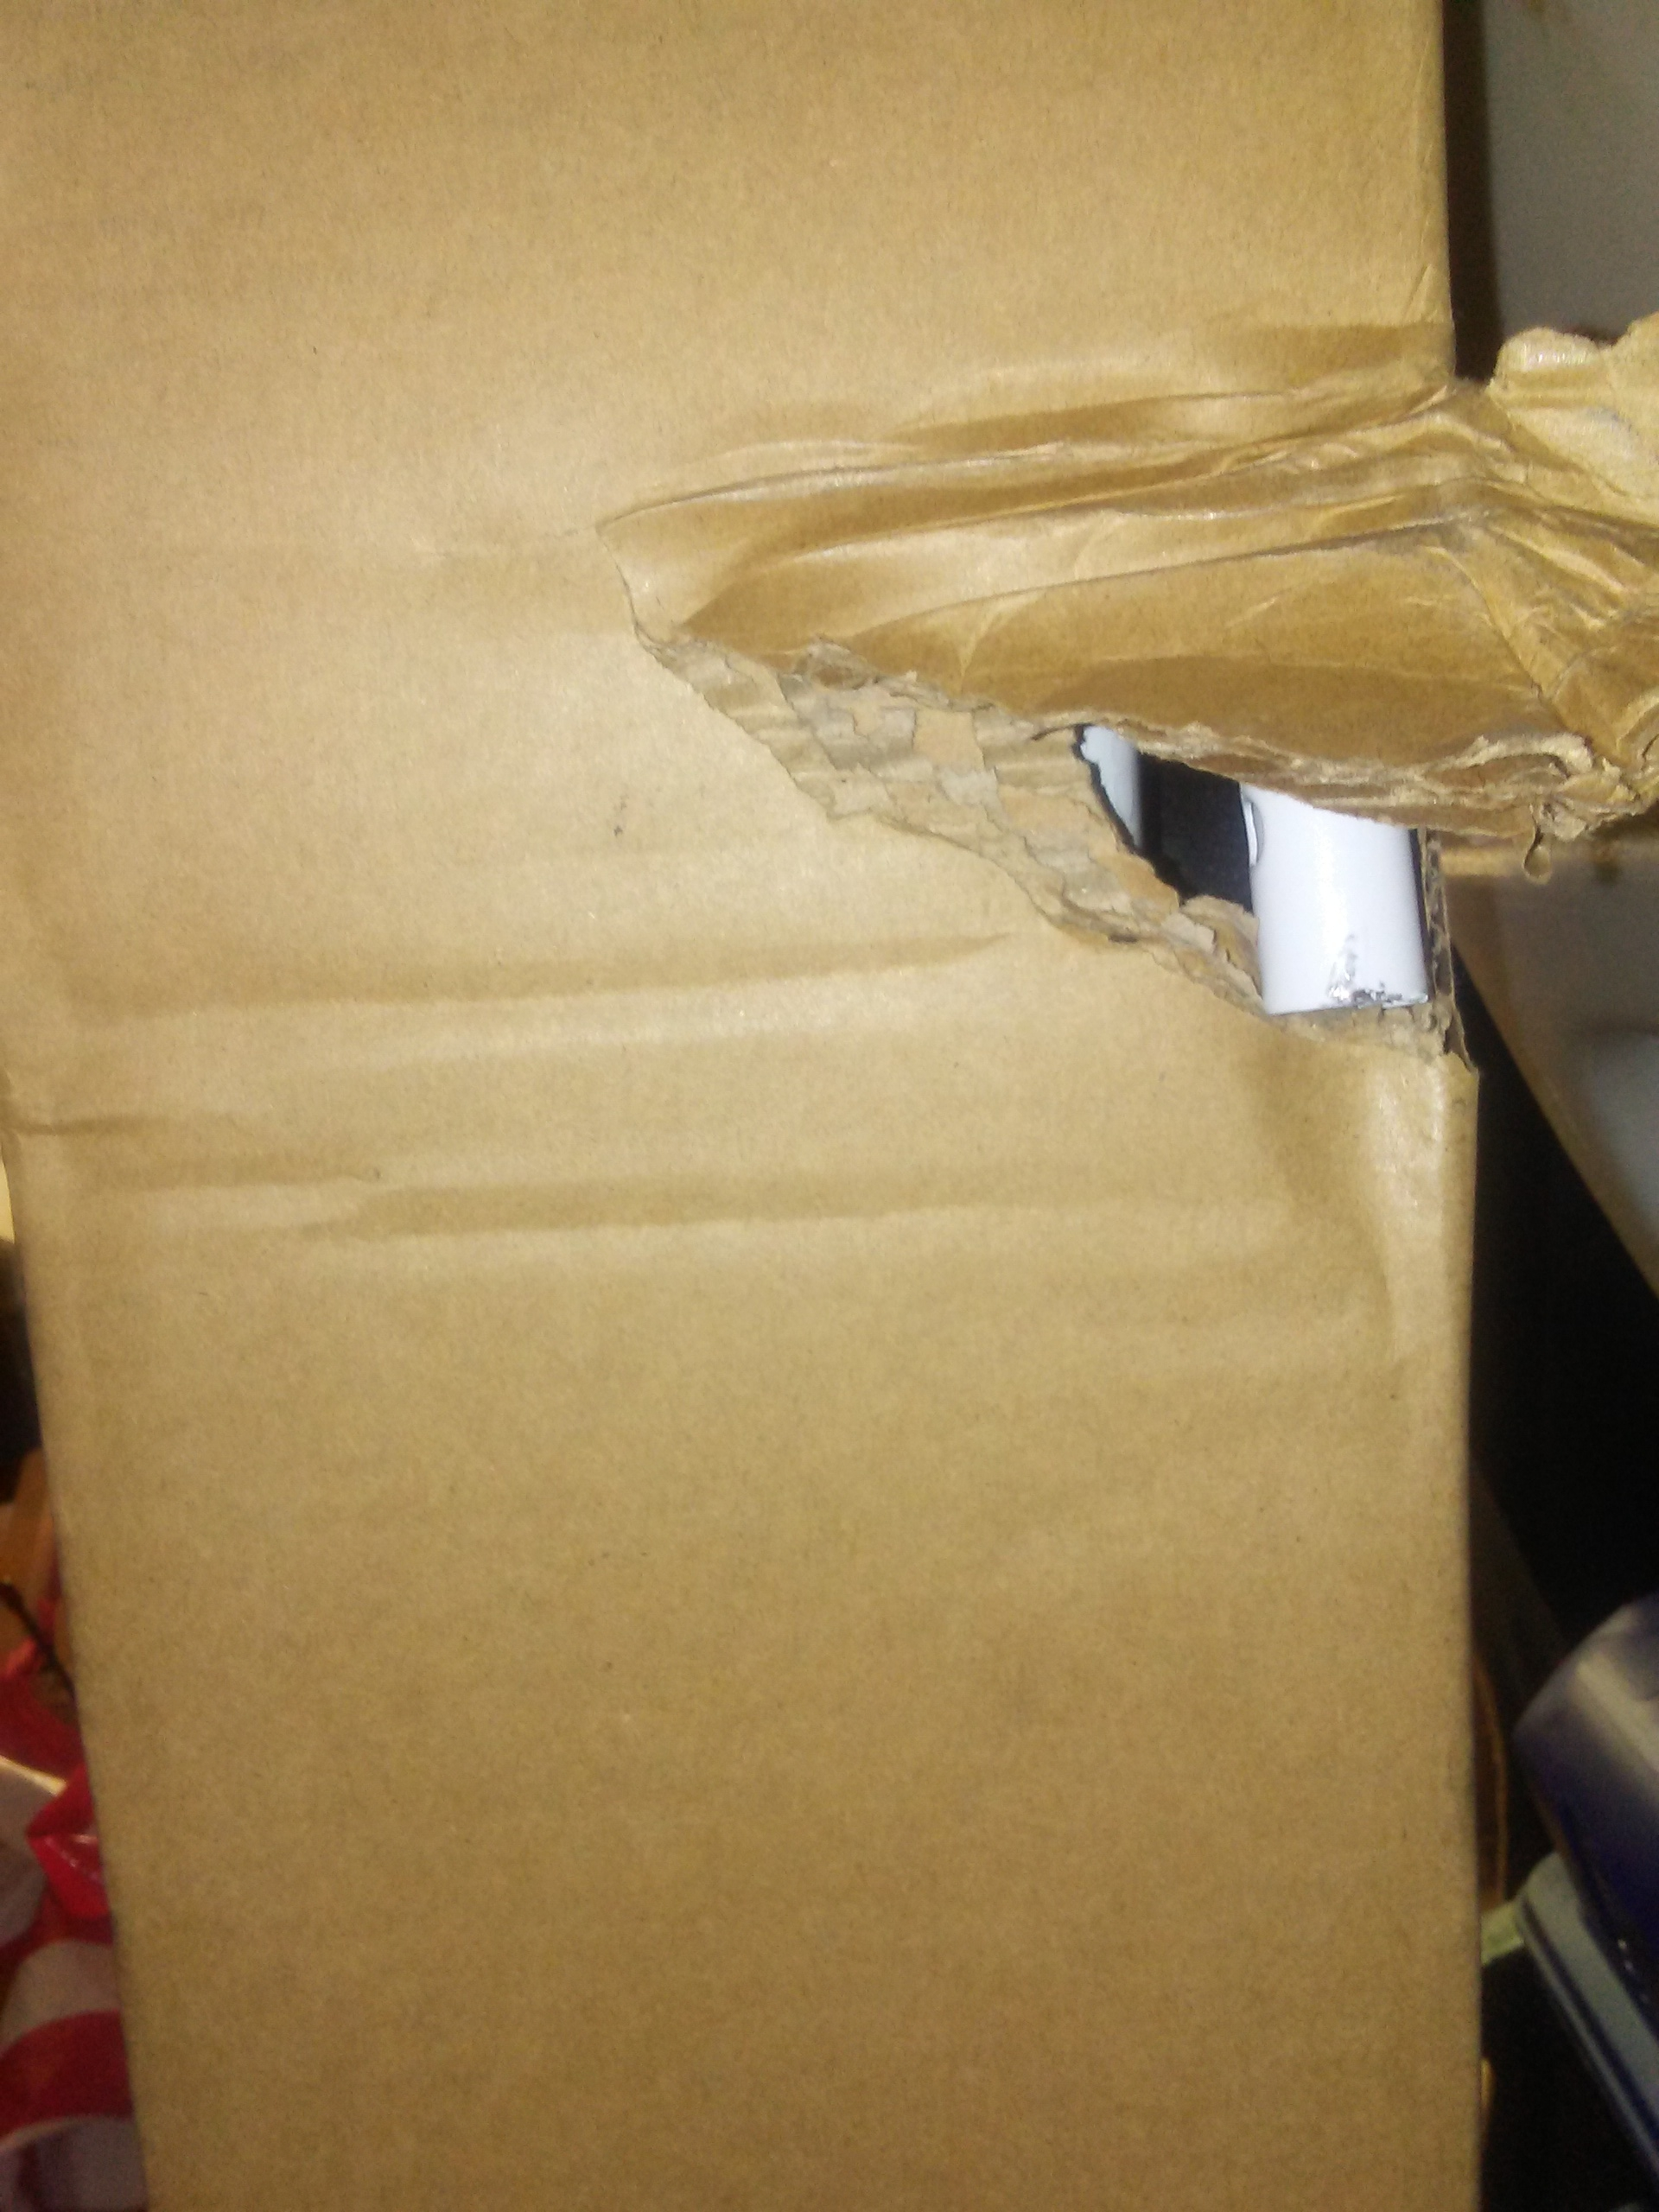 Damaged box from shippers.